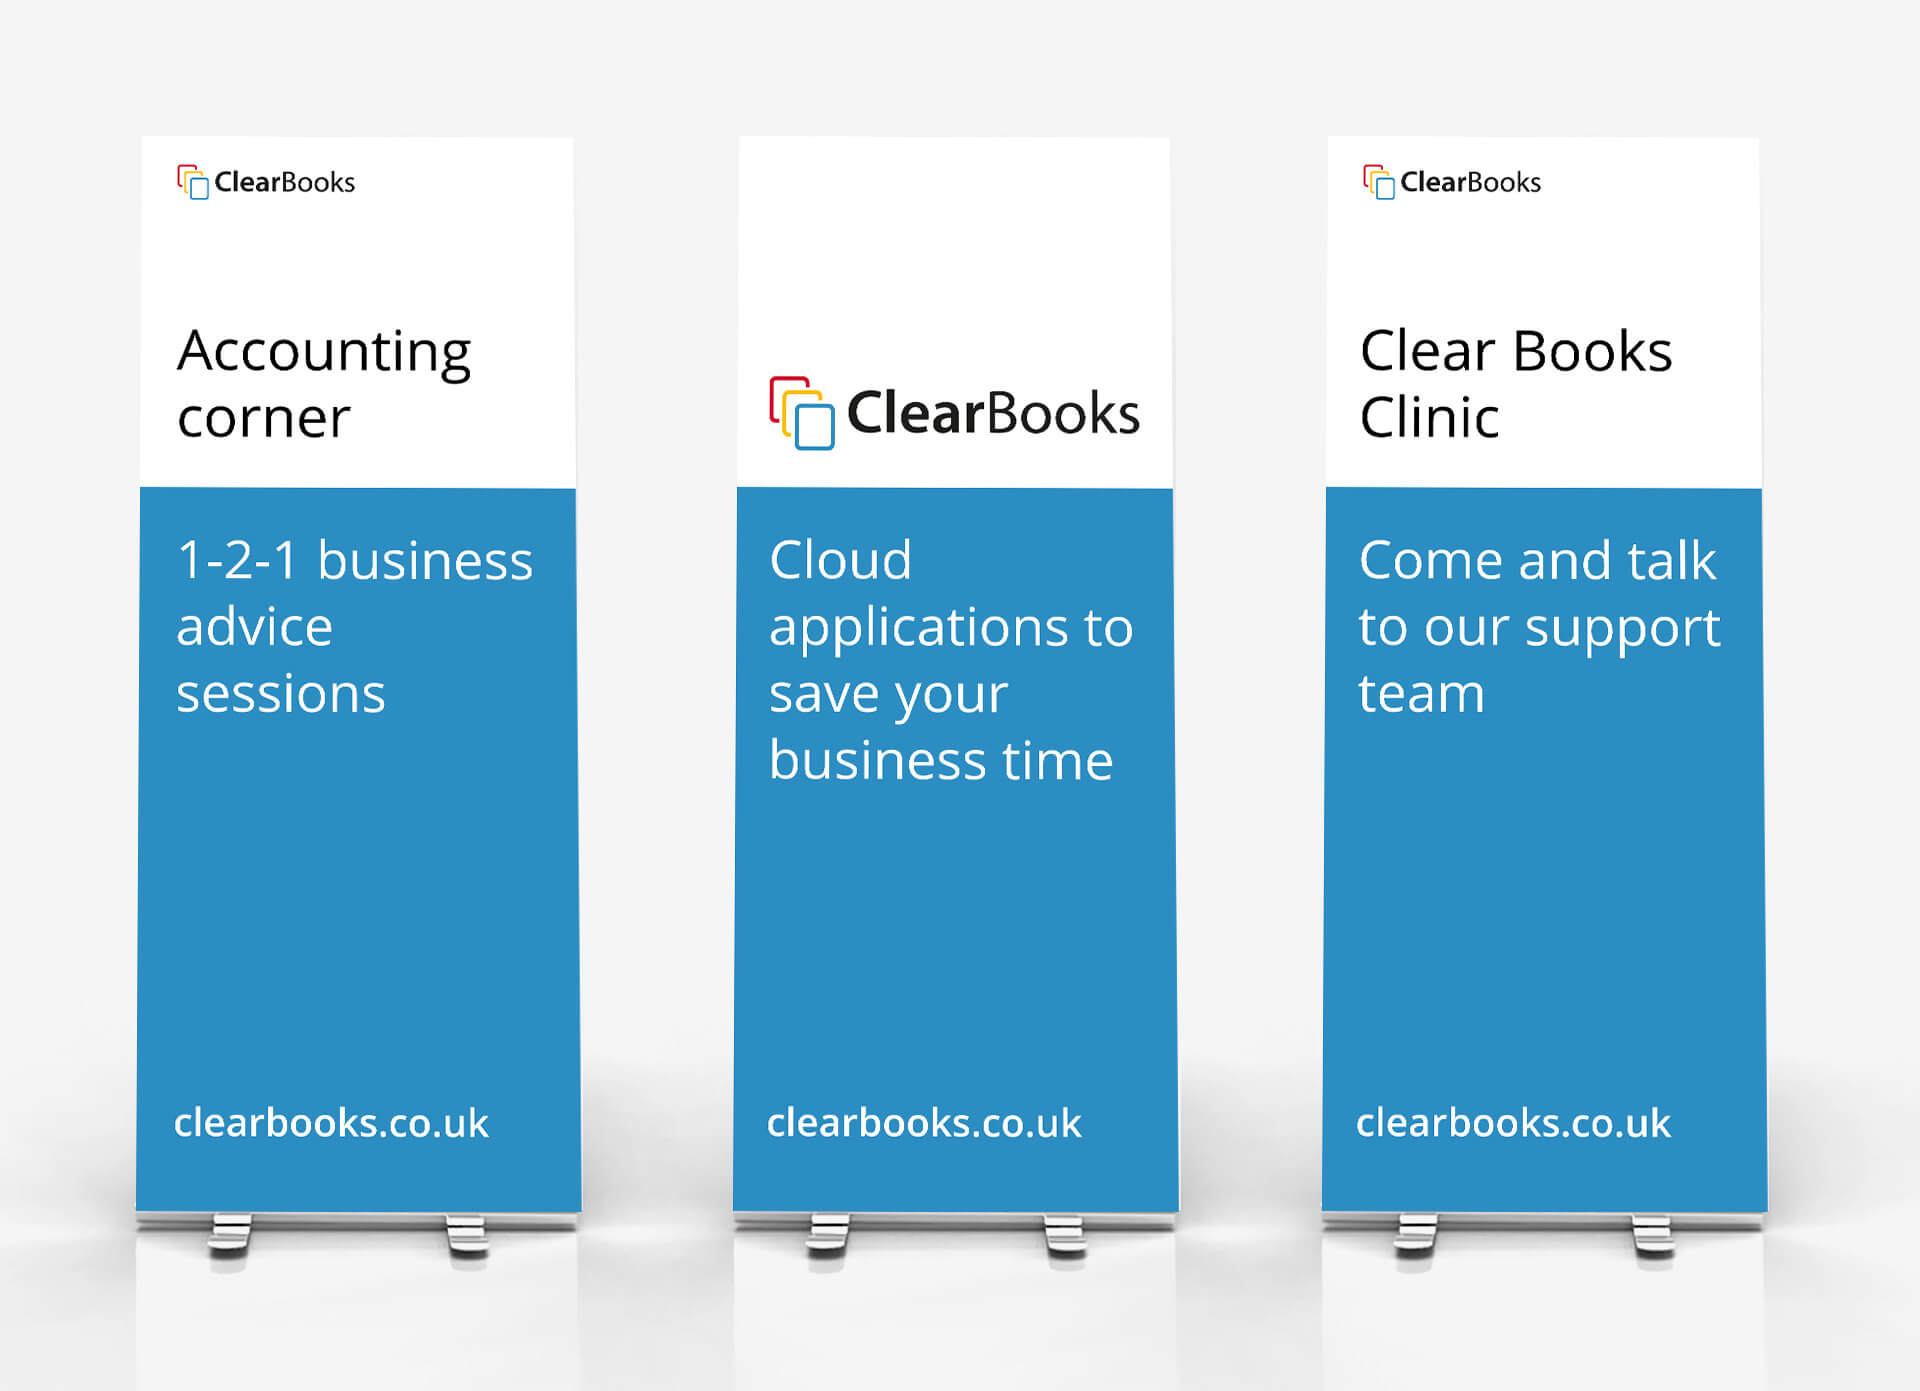 Clear Books exhibition banners